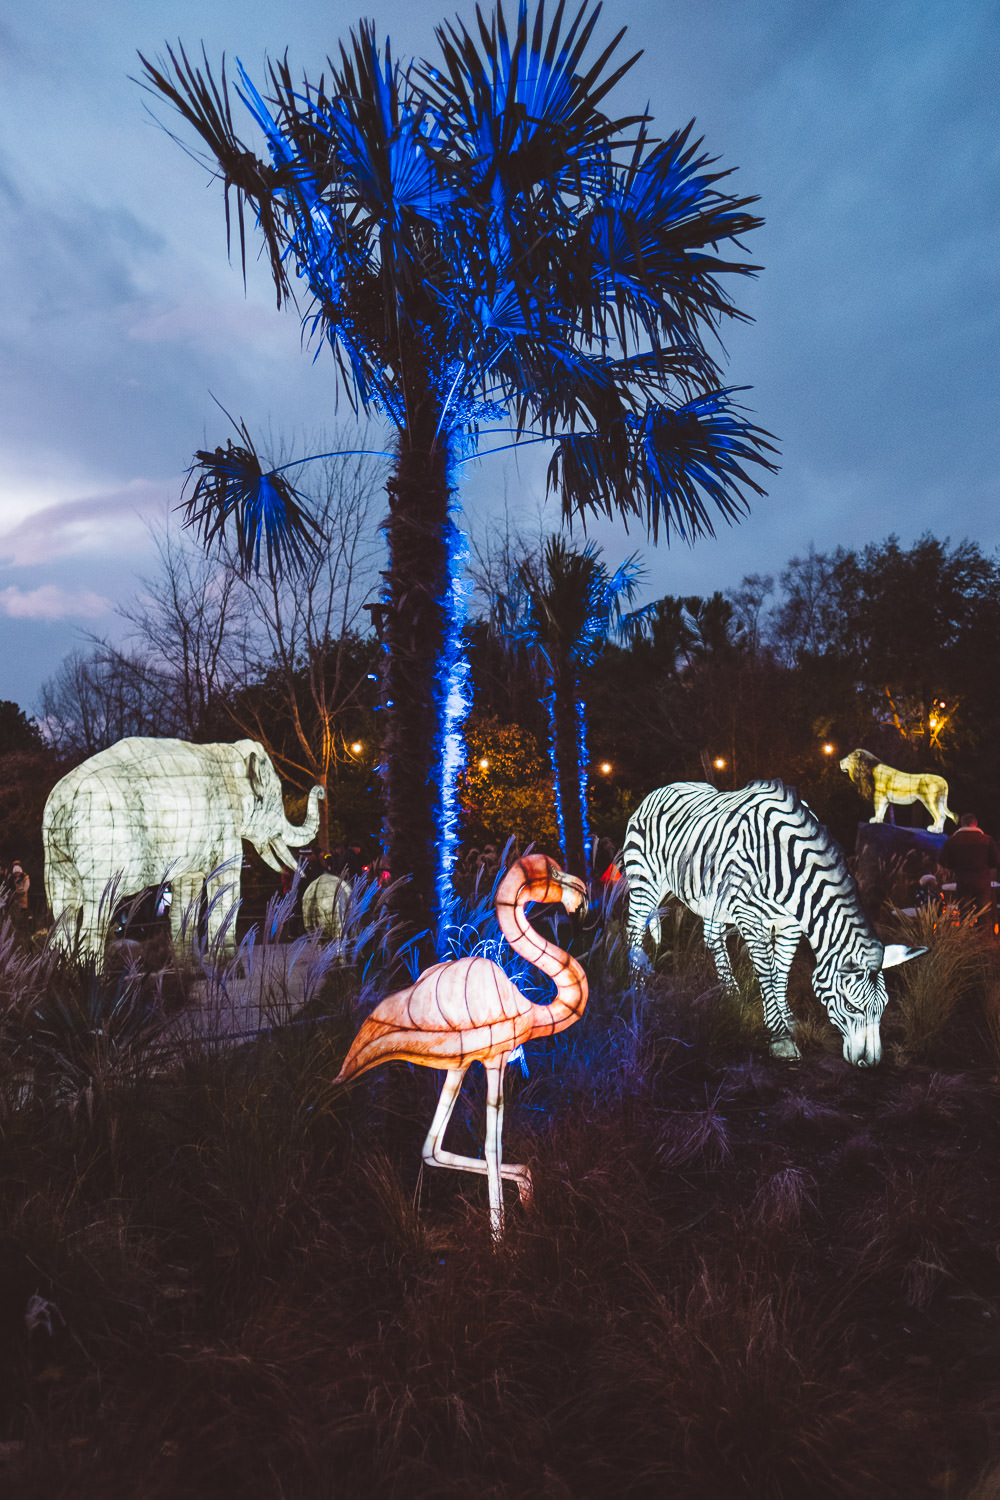 cocktail_saturdays_the_lanterns_at_chester_zoo-7809.jpg